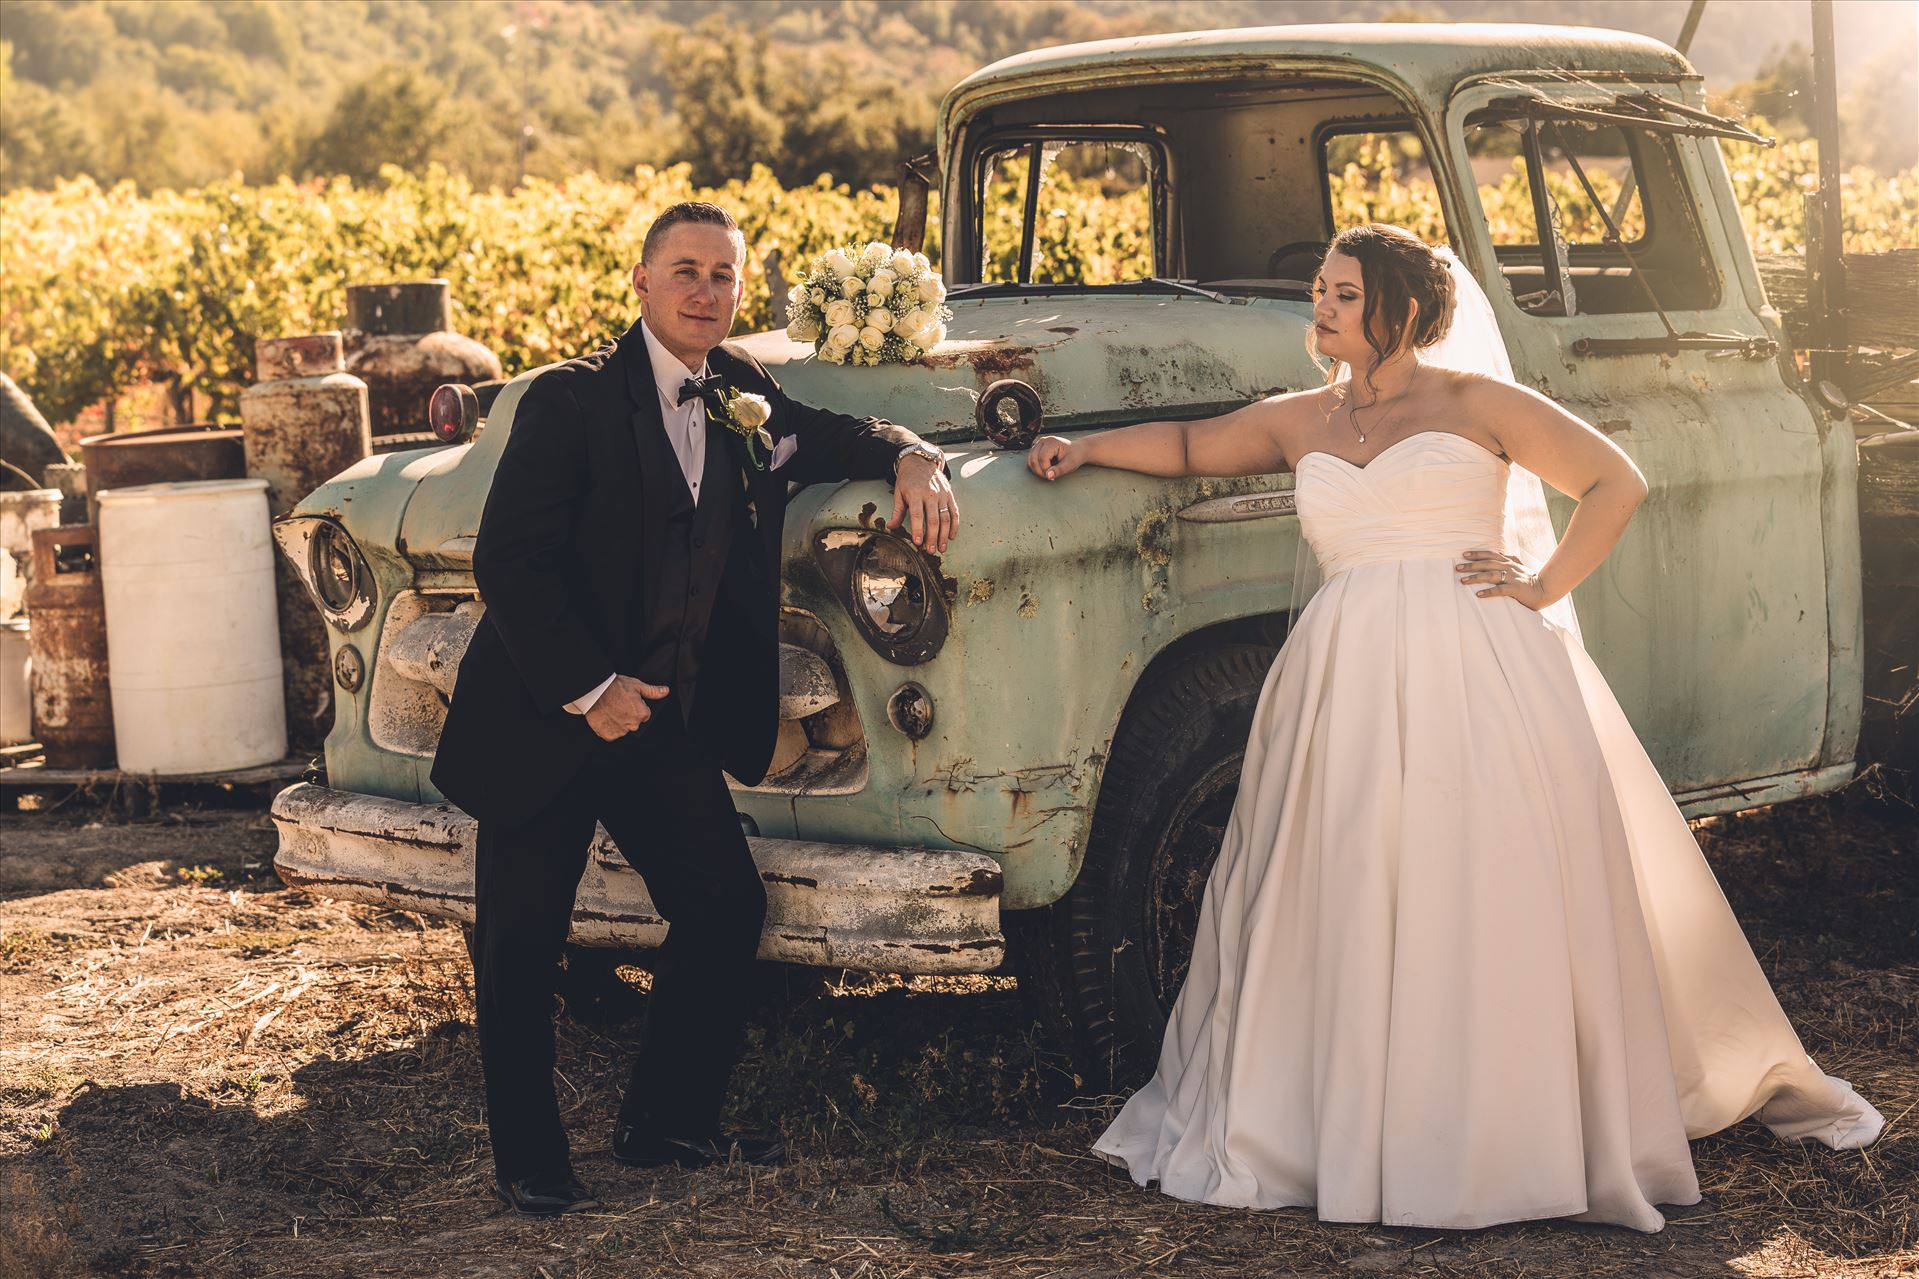 Tyler and Andrea - Tyler and Andrea had their ceremony at the Fortino Winery, in  Gilroy California, the Santa Clara Valley. by D Scott Smith